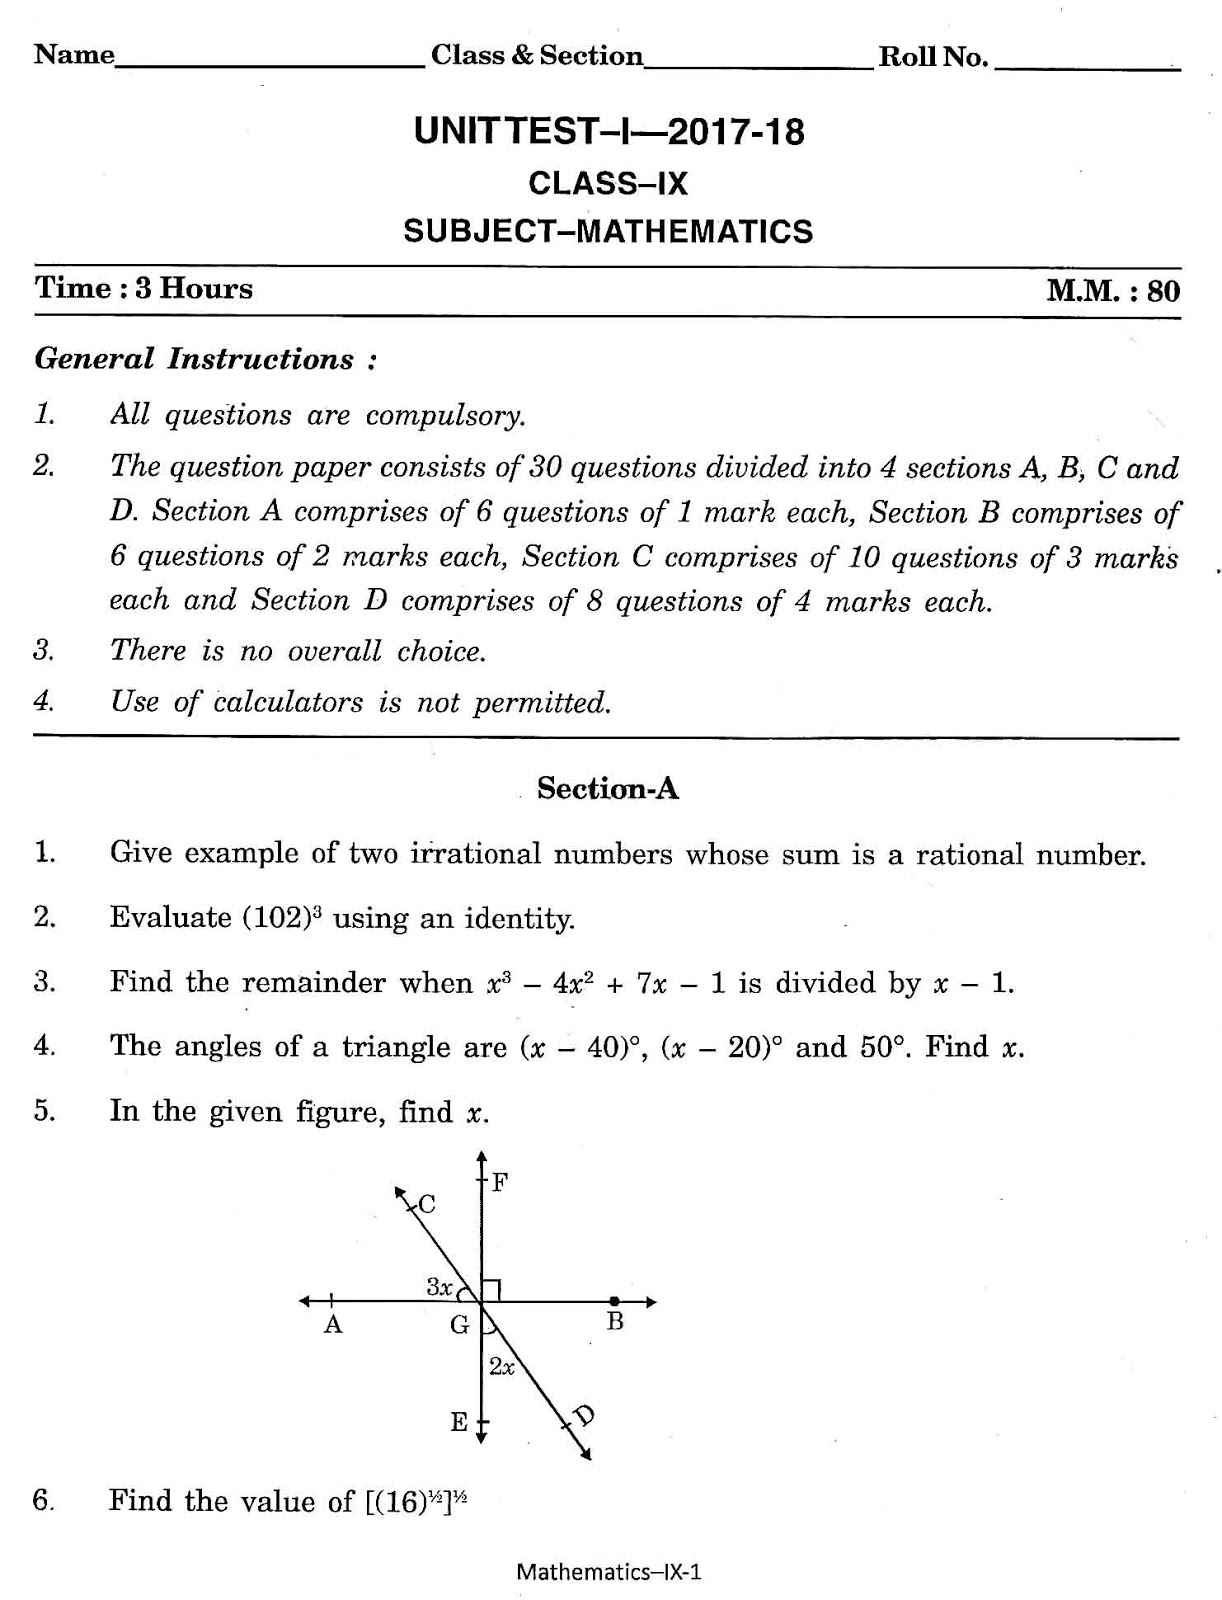 Maths4all class ix mathematics bvn question paper with solution class ix mathematics bvn question paper with solution unit test 1 2017 2018 malvernweather Gallery